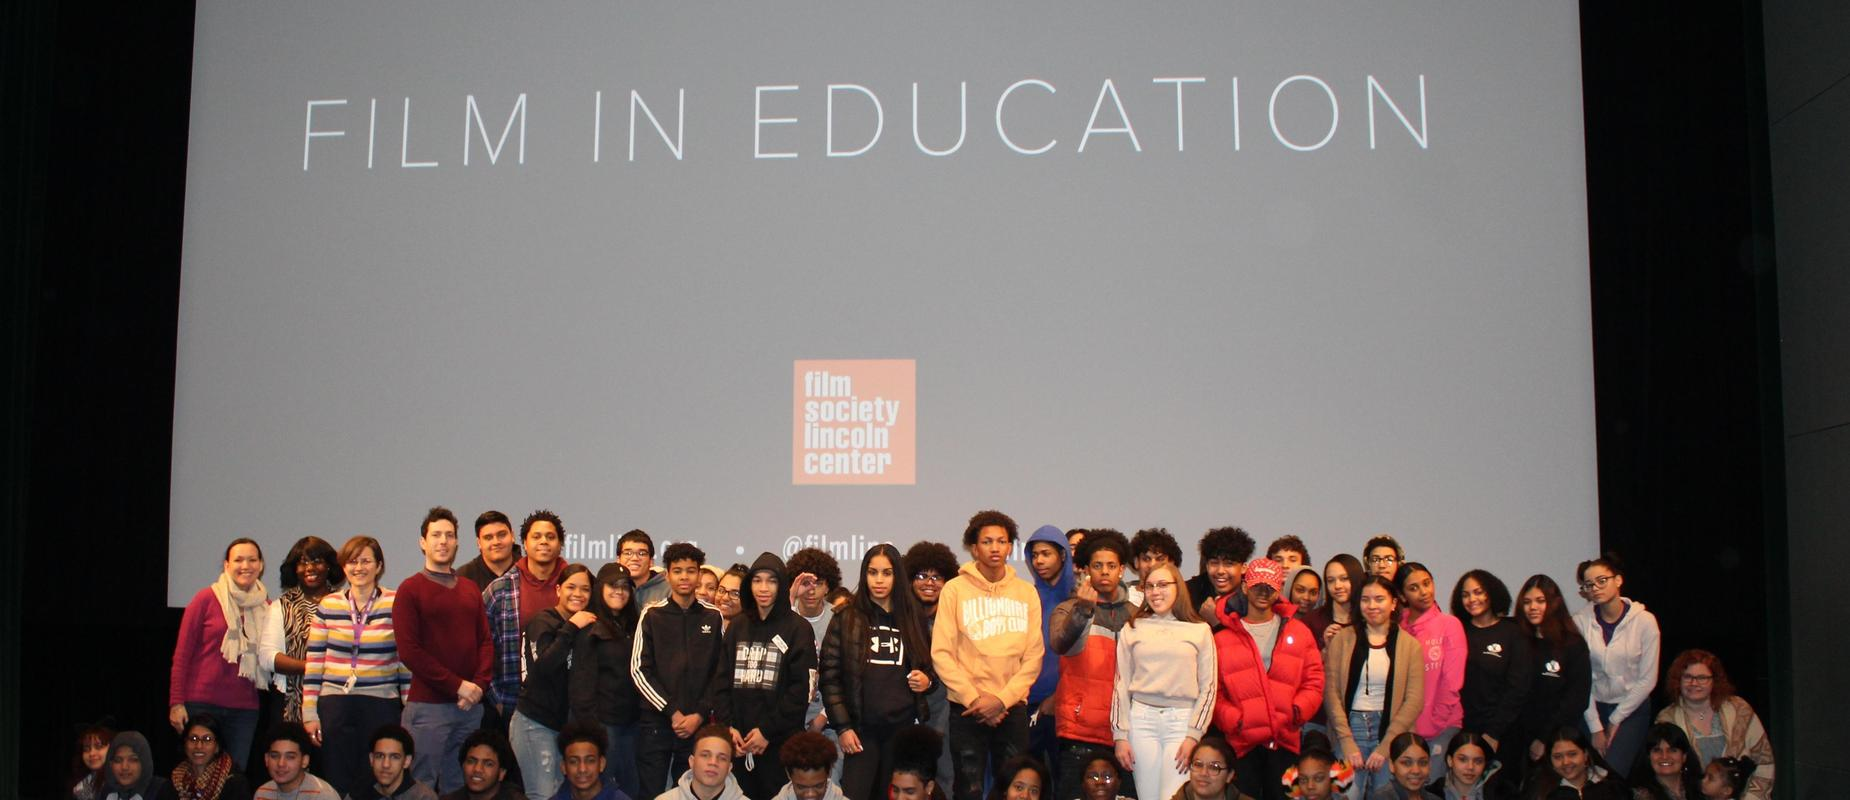 Film at Lincoln Center Young Filmmakers Films